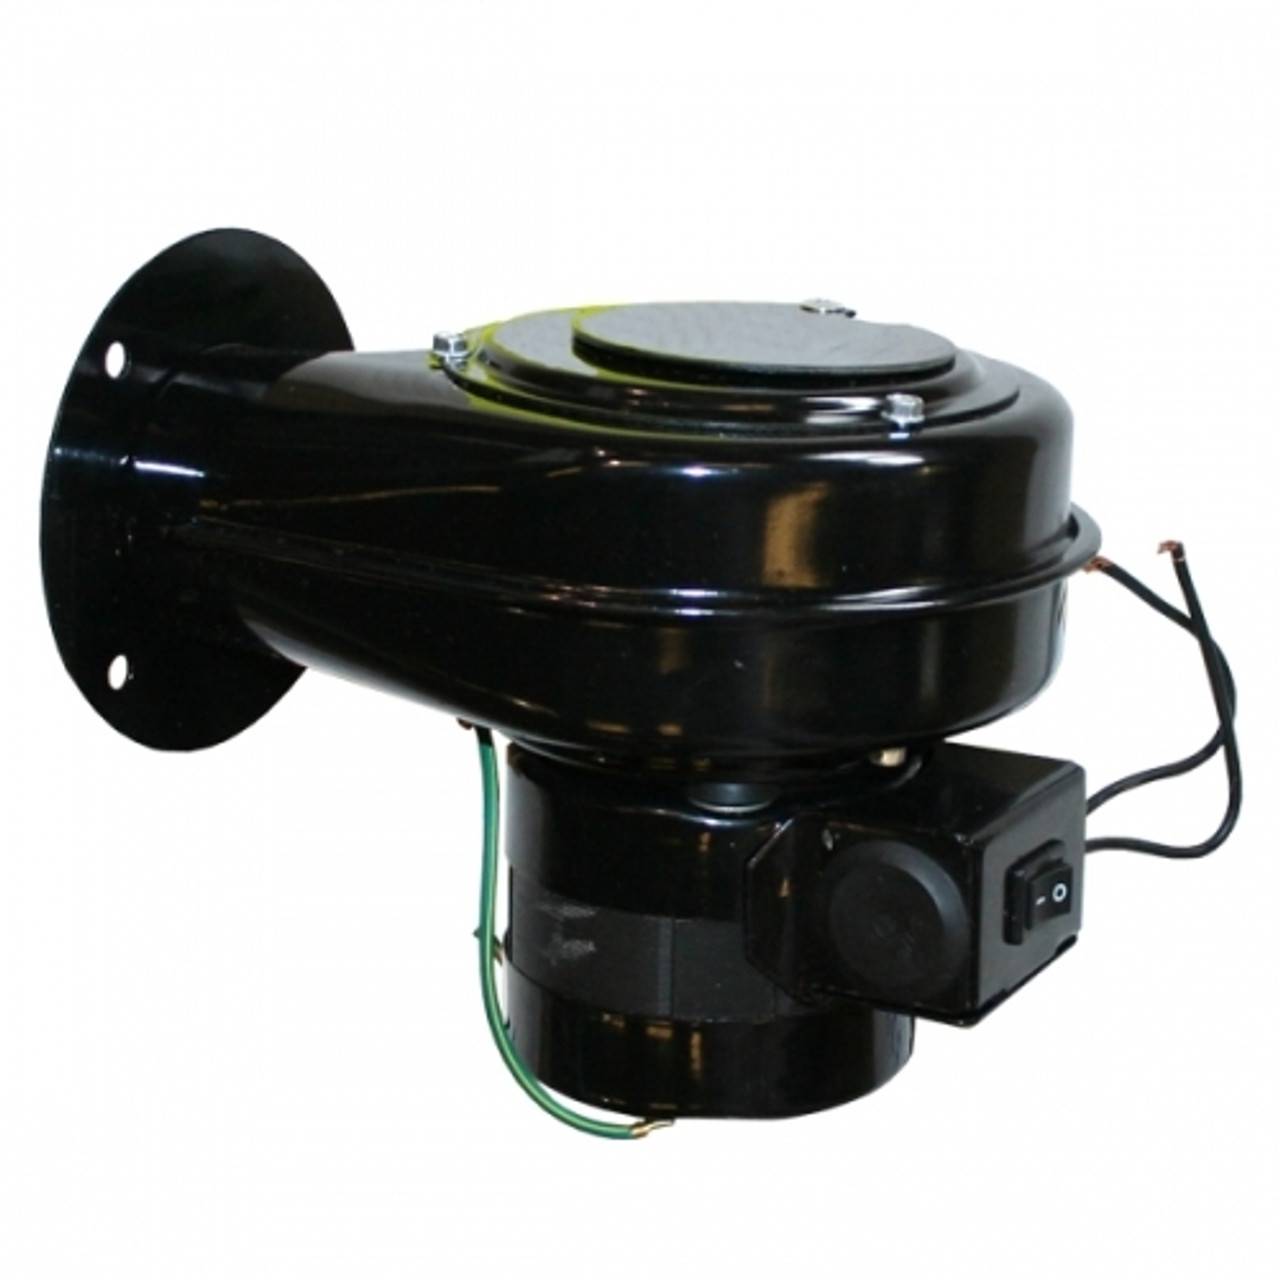 Air Blower For Wood Stoves : Replacement forced air draft blower for us stove furnaces